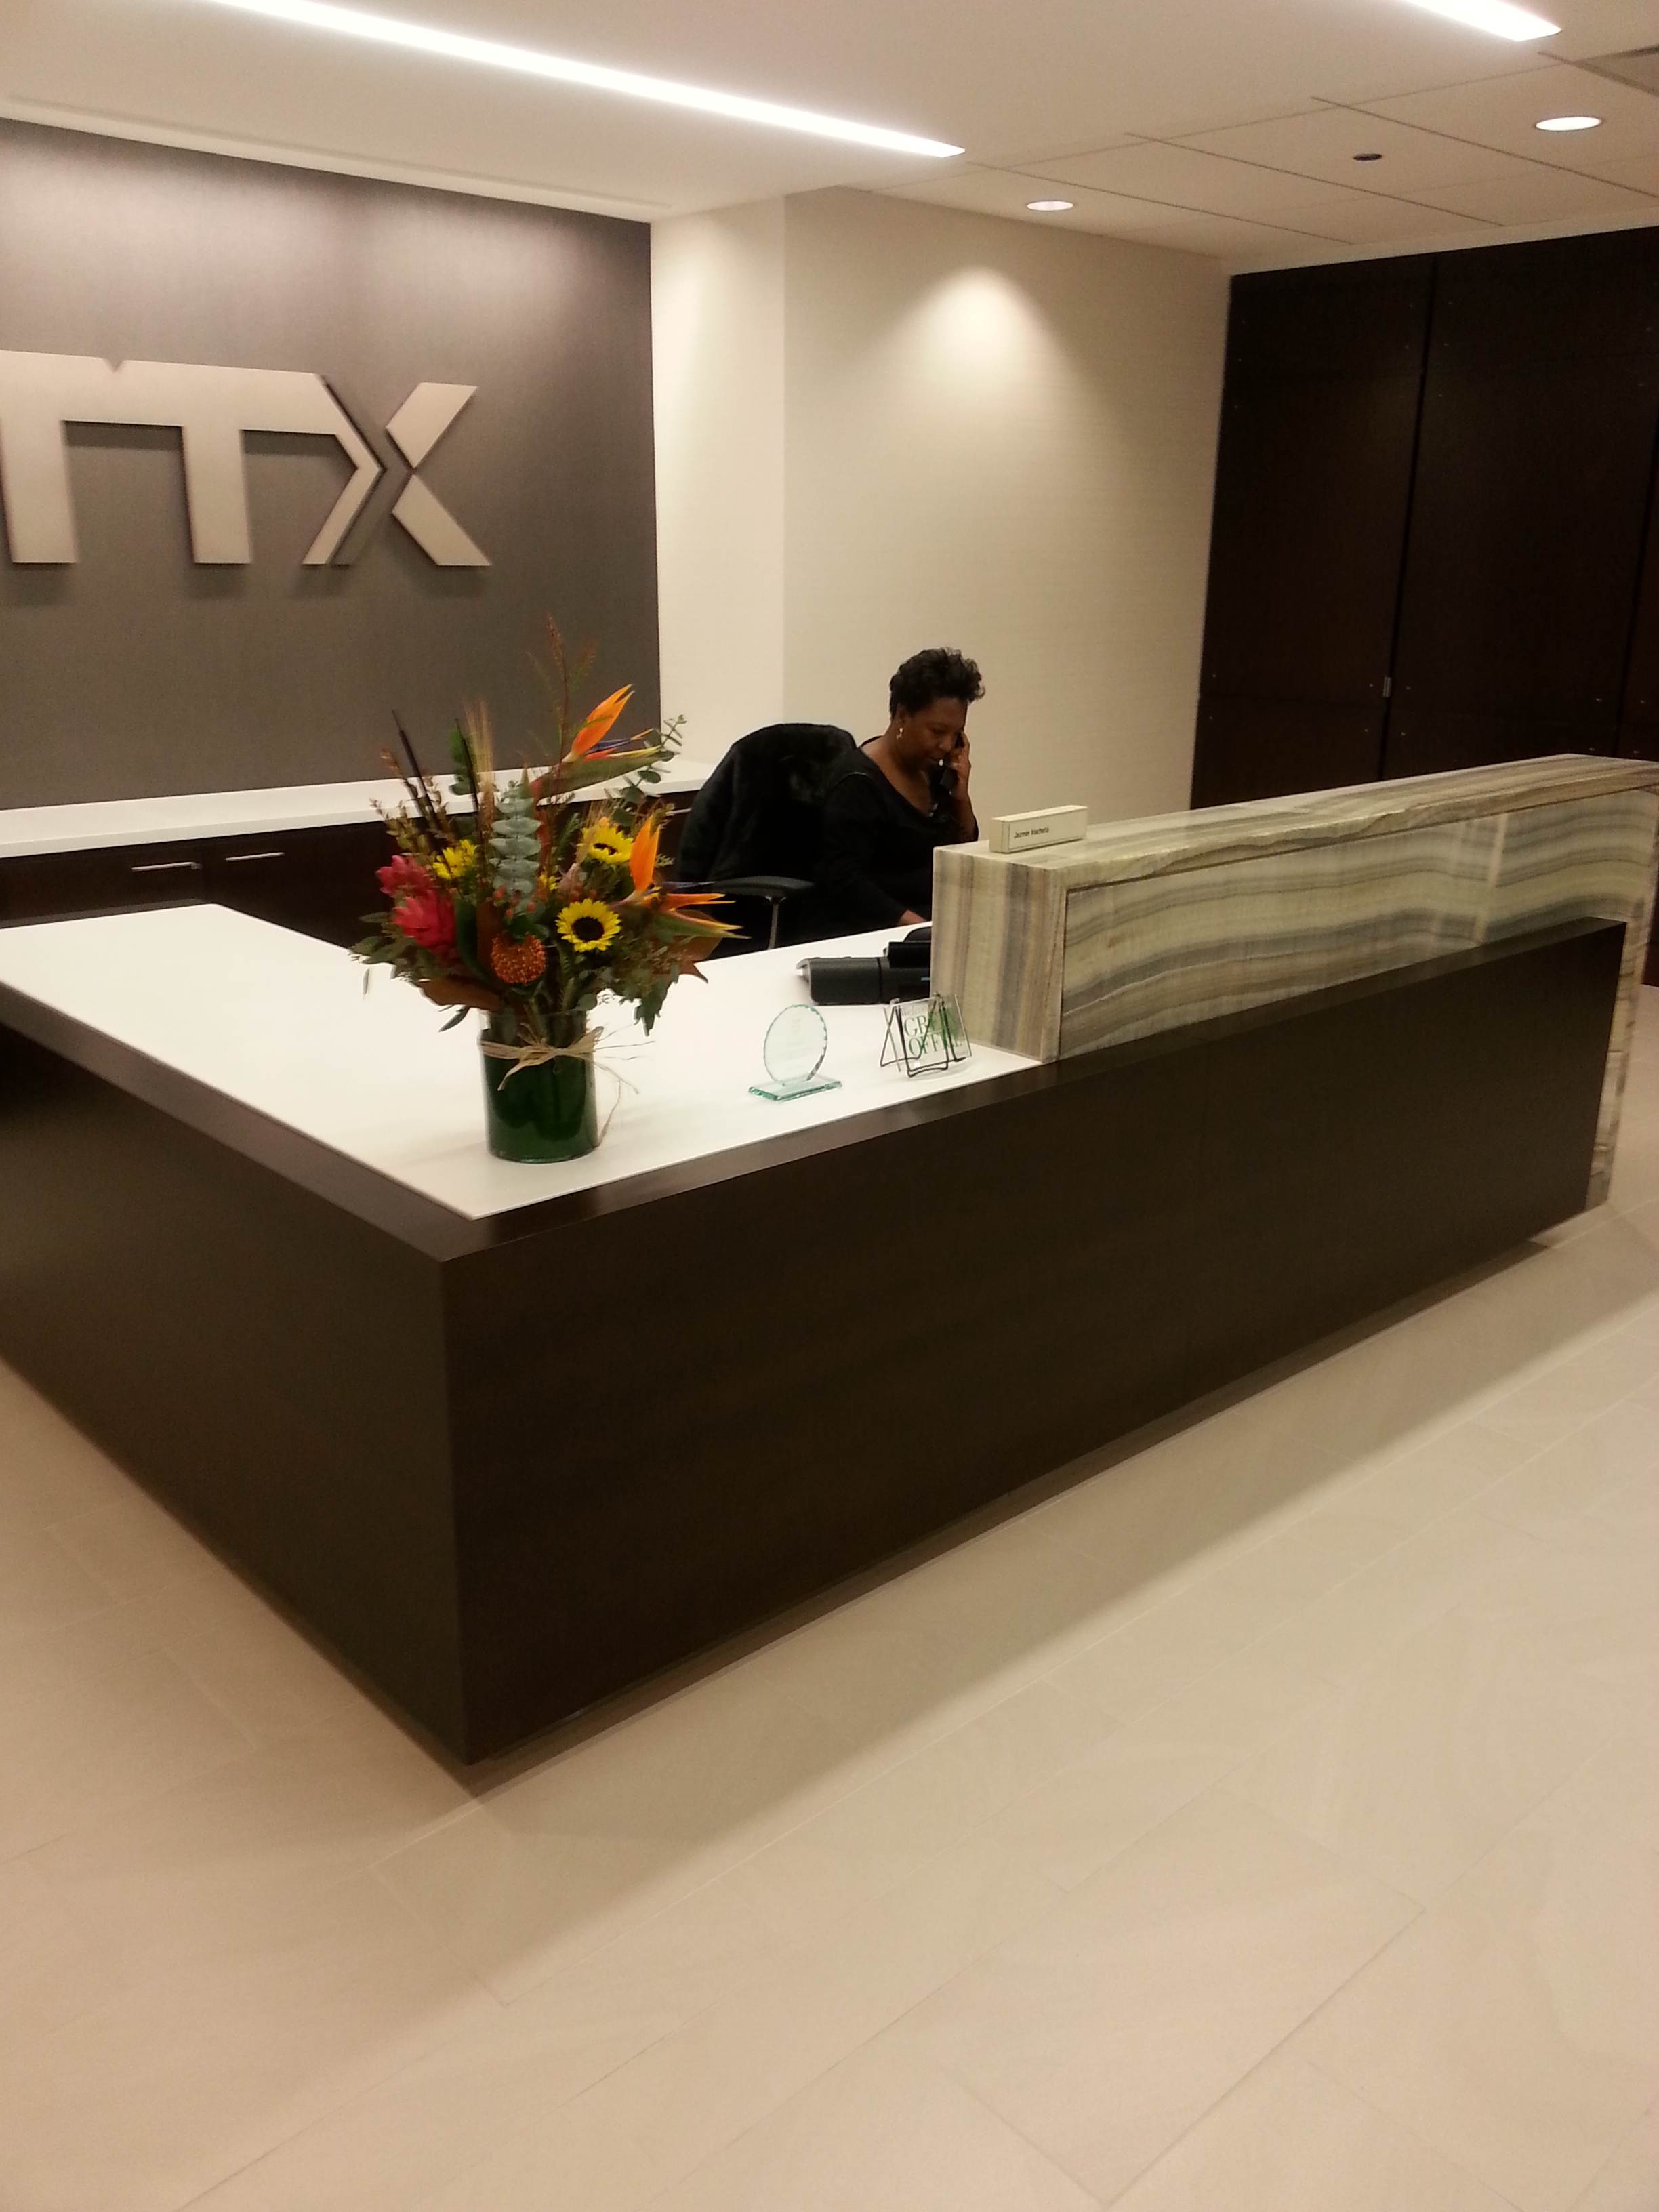 TTX RECEPTION DESK #2